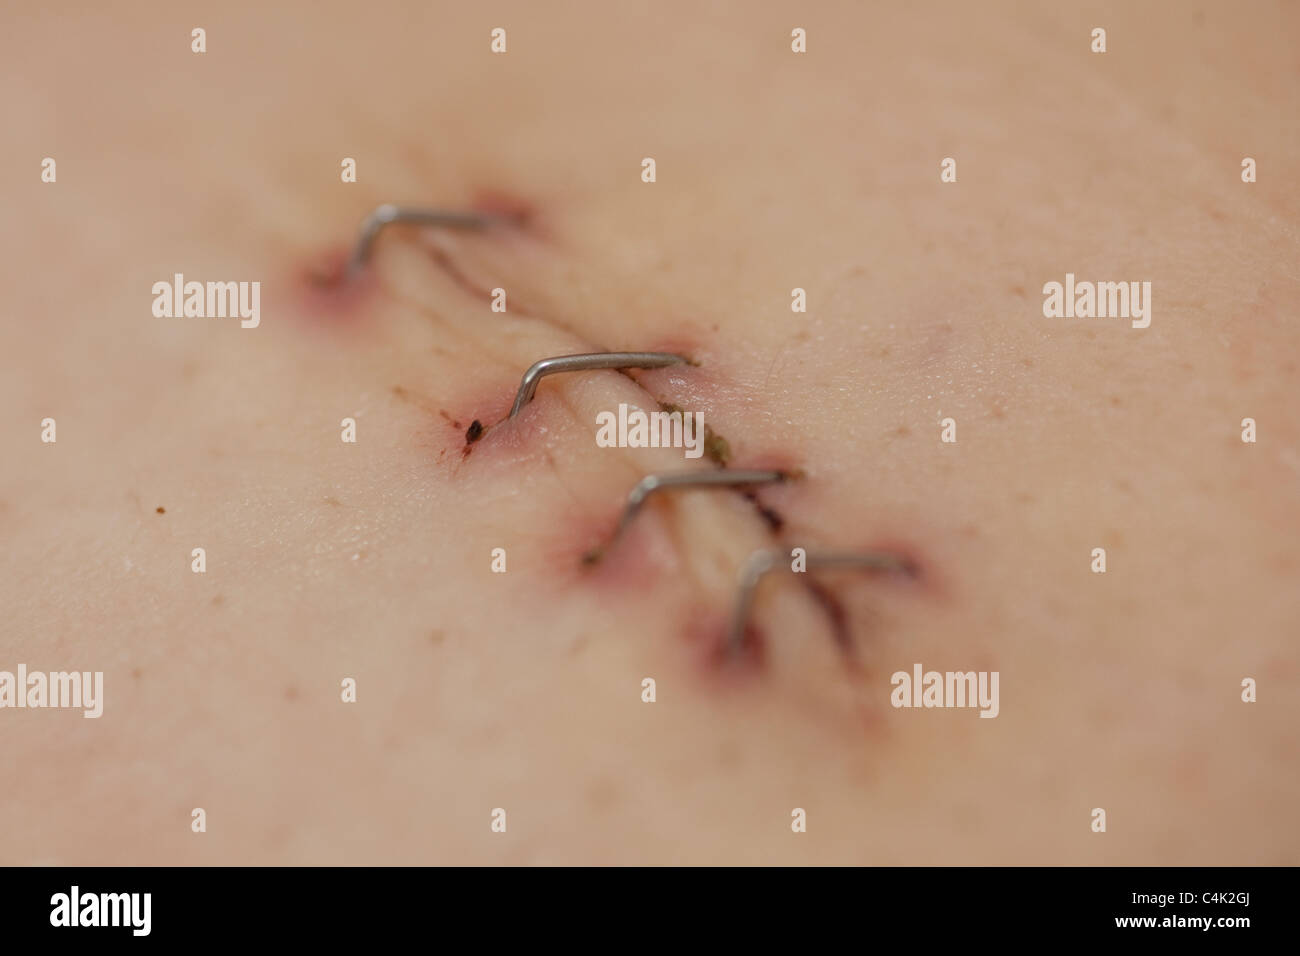 Laproscopic operation scar from a Cholecystectomy held together to heal with staples Stock Photo